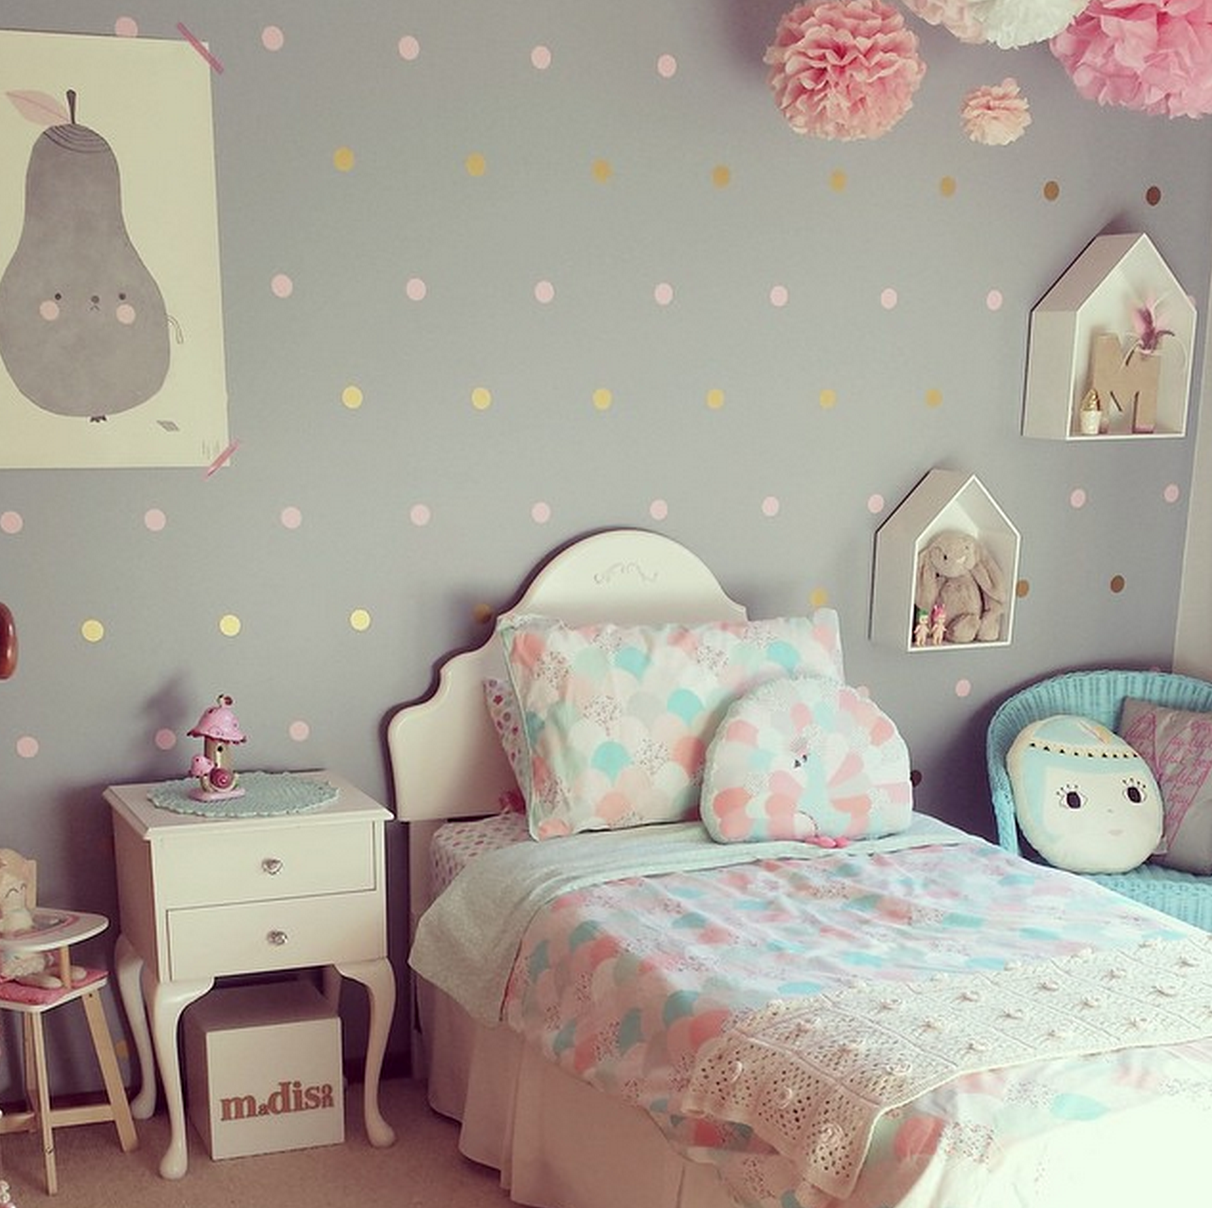 parede cinza decora o quarto infantil pinterest kinderzimmer m dchenzimmer und. Black Bedroom Furniture Sets. Home Design Ideas